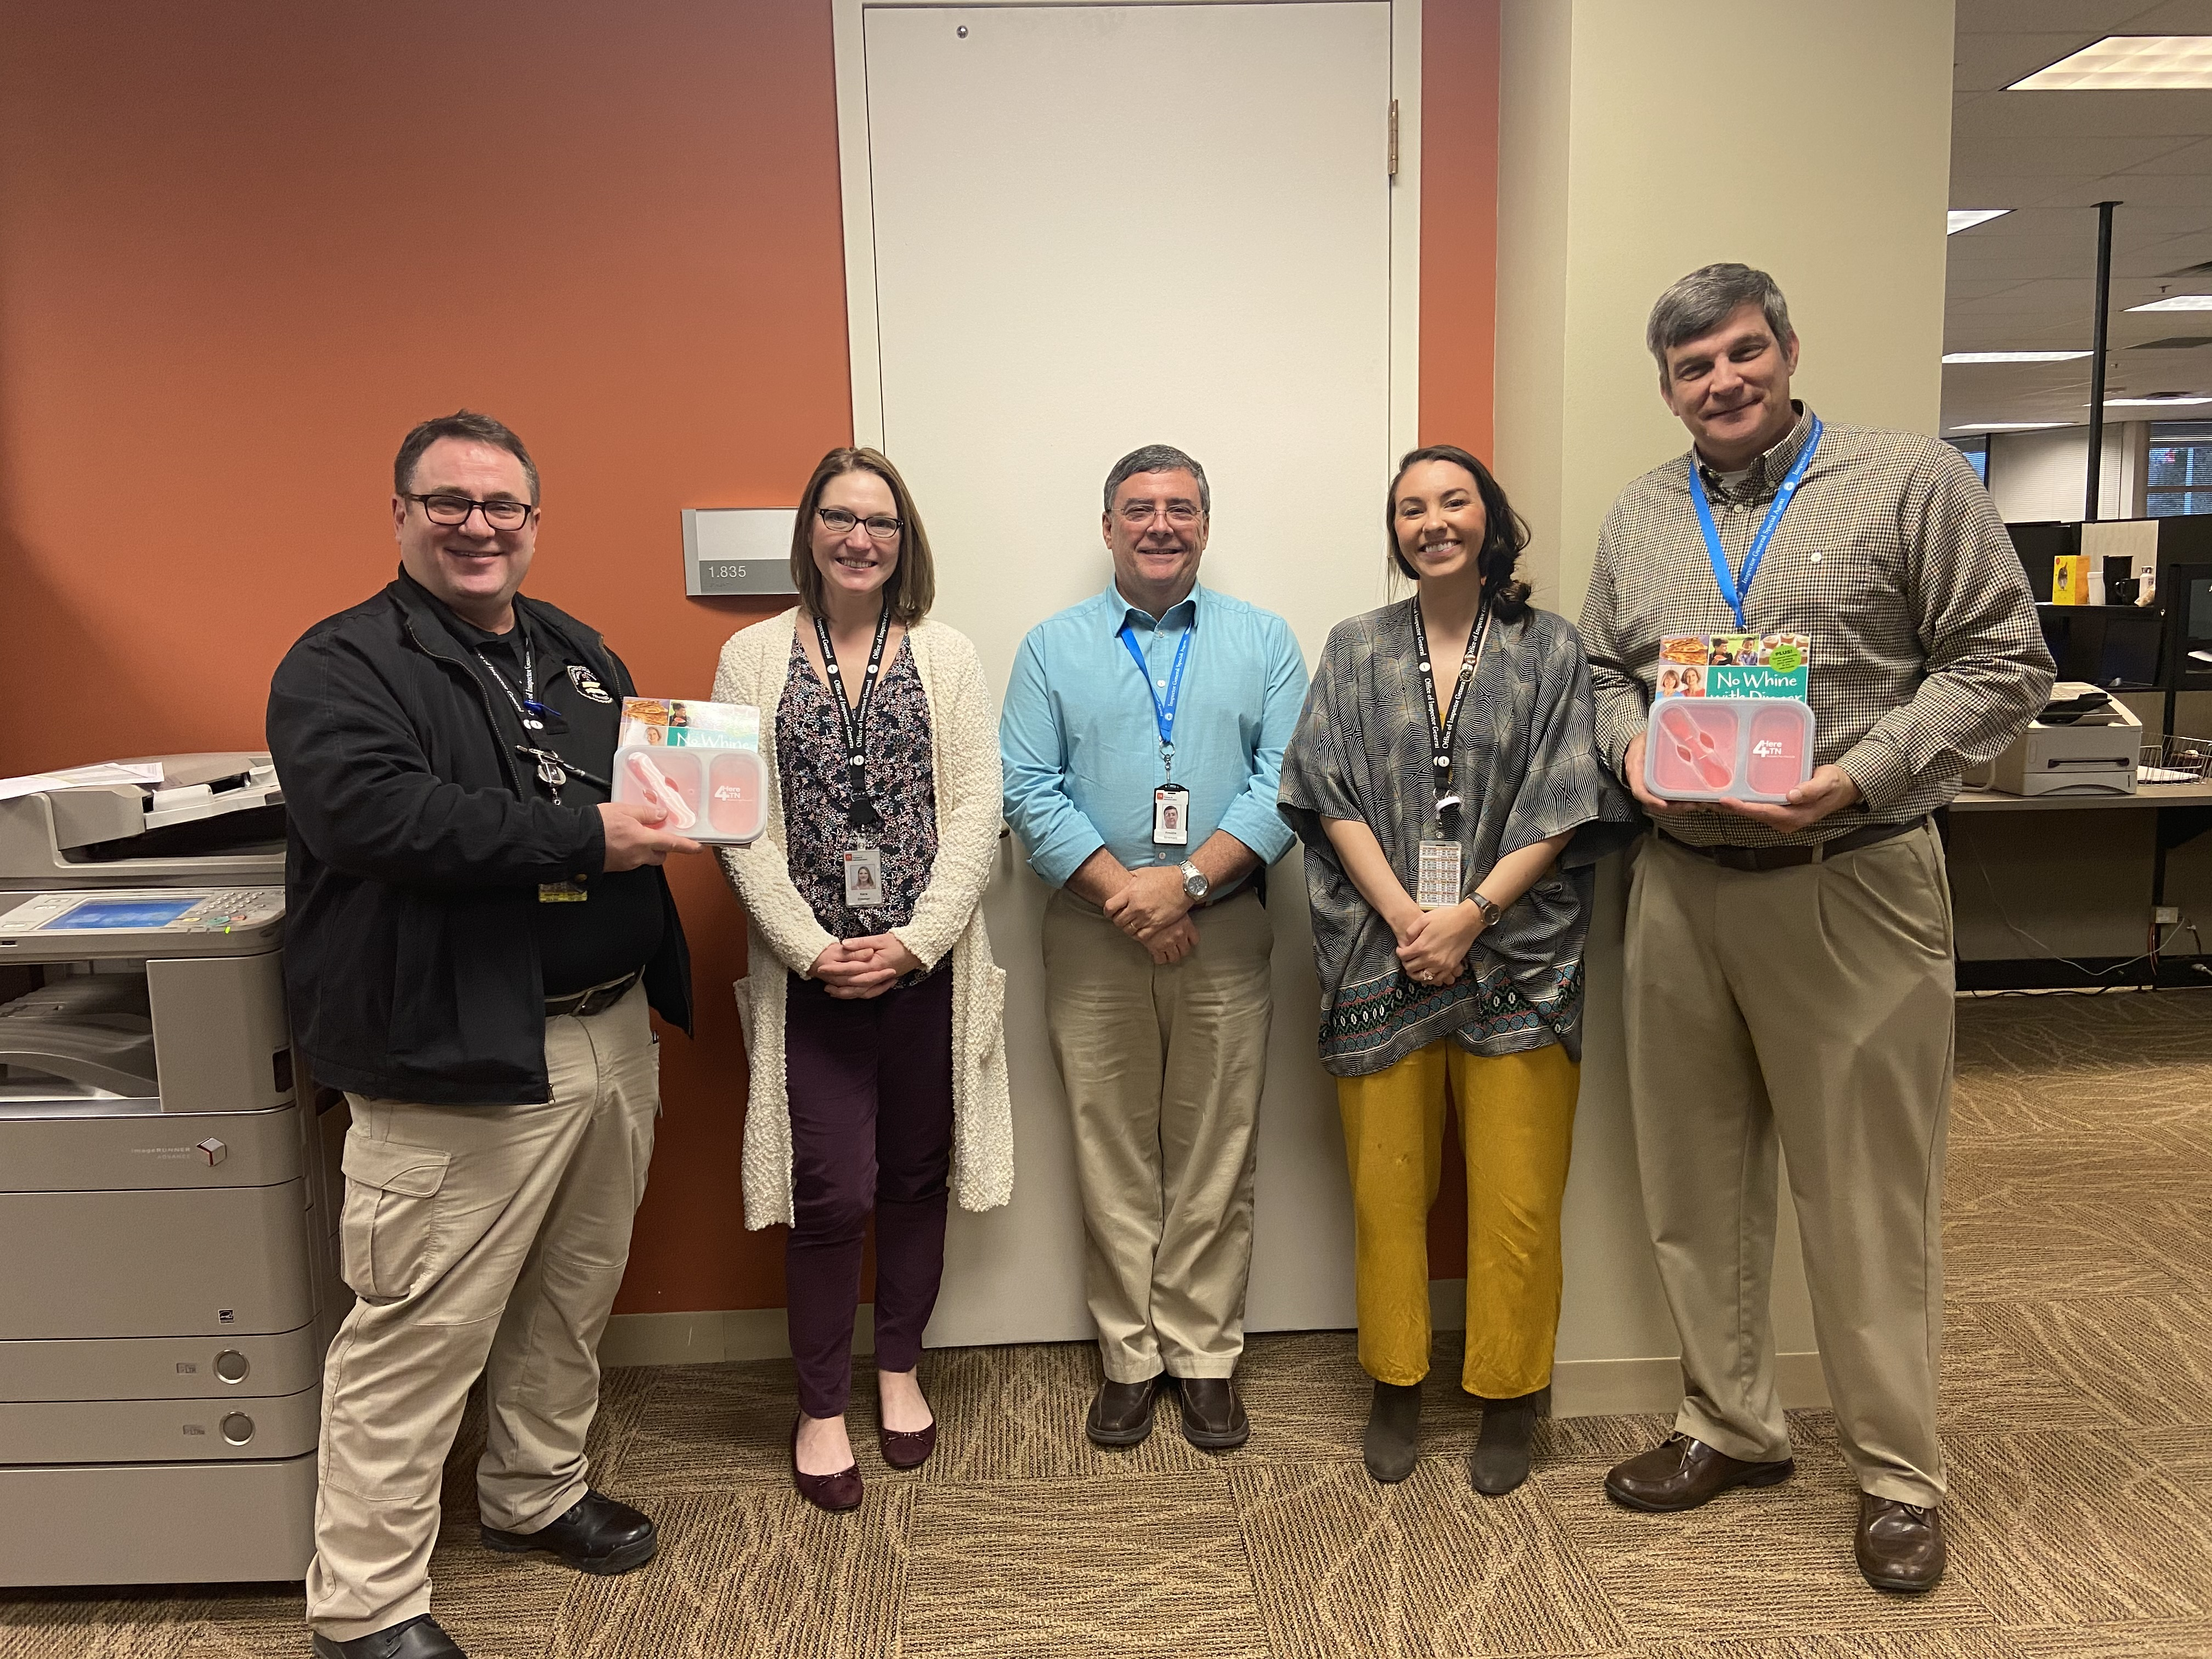 F&A's Office of Inspector General held a soup and stew party. They had four entries: Hoosier Stew, Potato Soup, Zuppa Toscano and Chicken Tortilla. Three OIG agents judged the soups. Hoosier Stew and Zuppa Toscano were named the winners, but we're told all of them were very delicious!